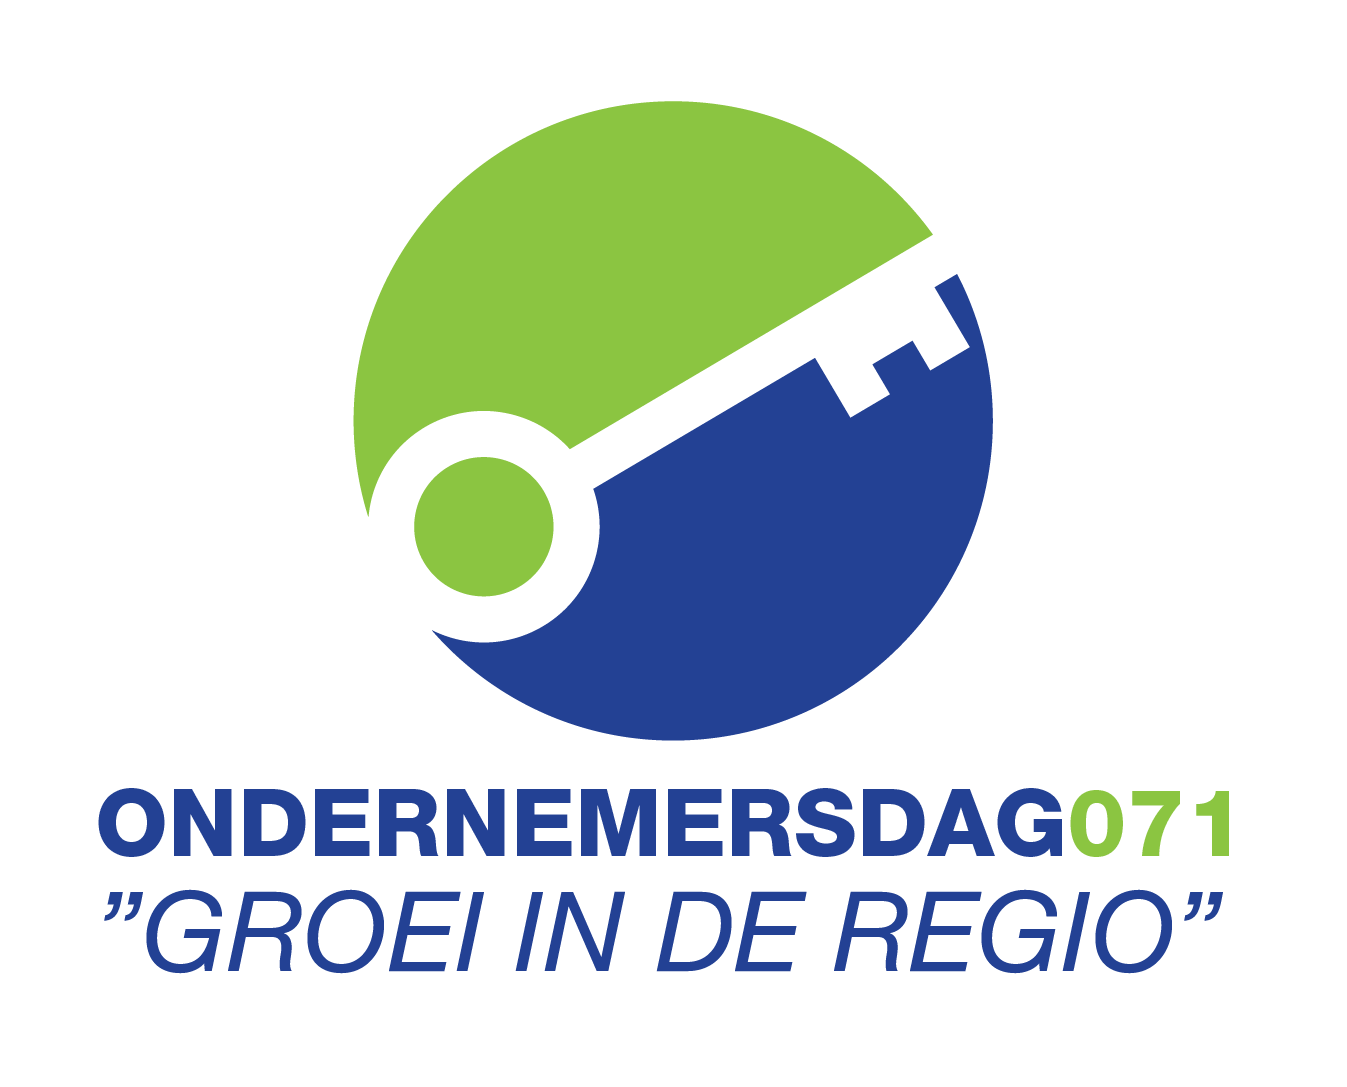 Inschrijving Ondernemersdag071 geopend